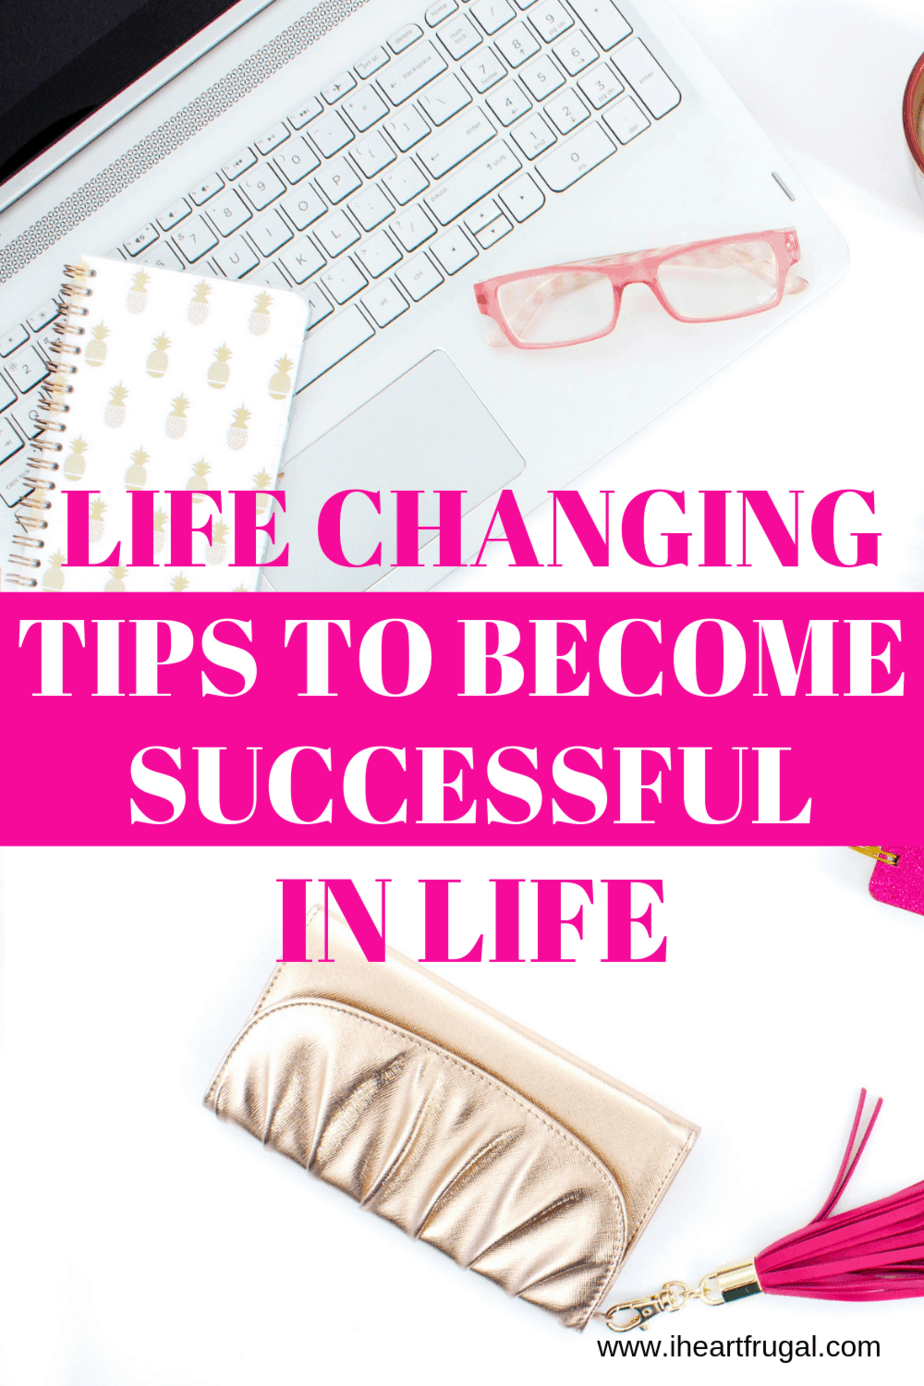 Tips to become successful in life